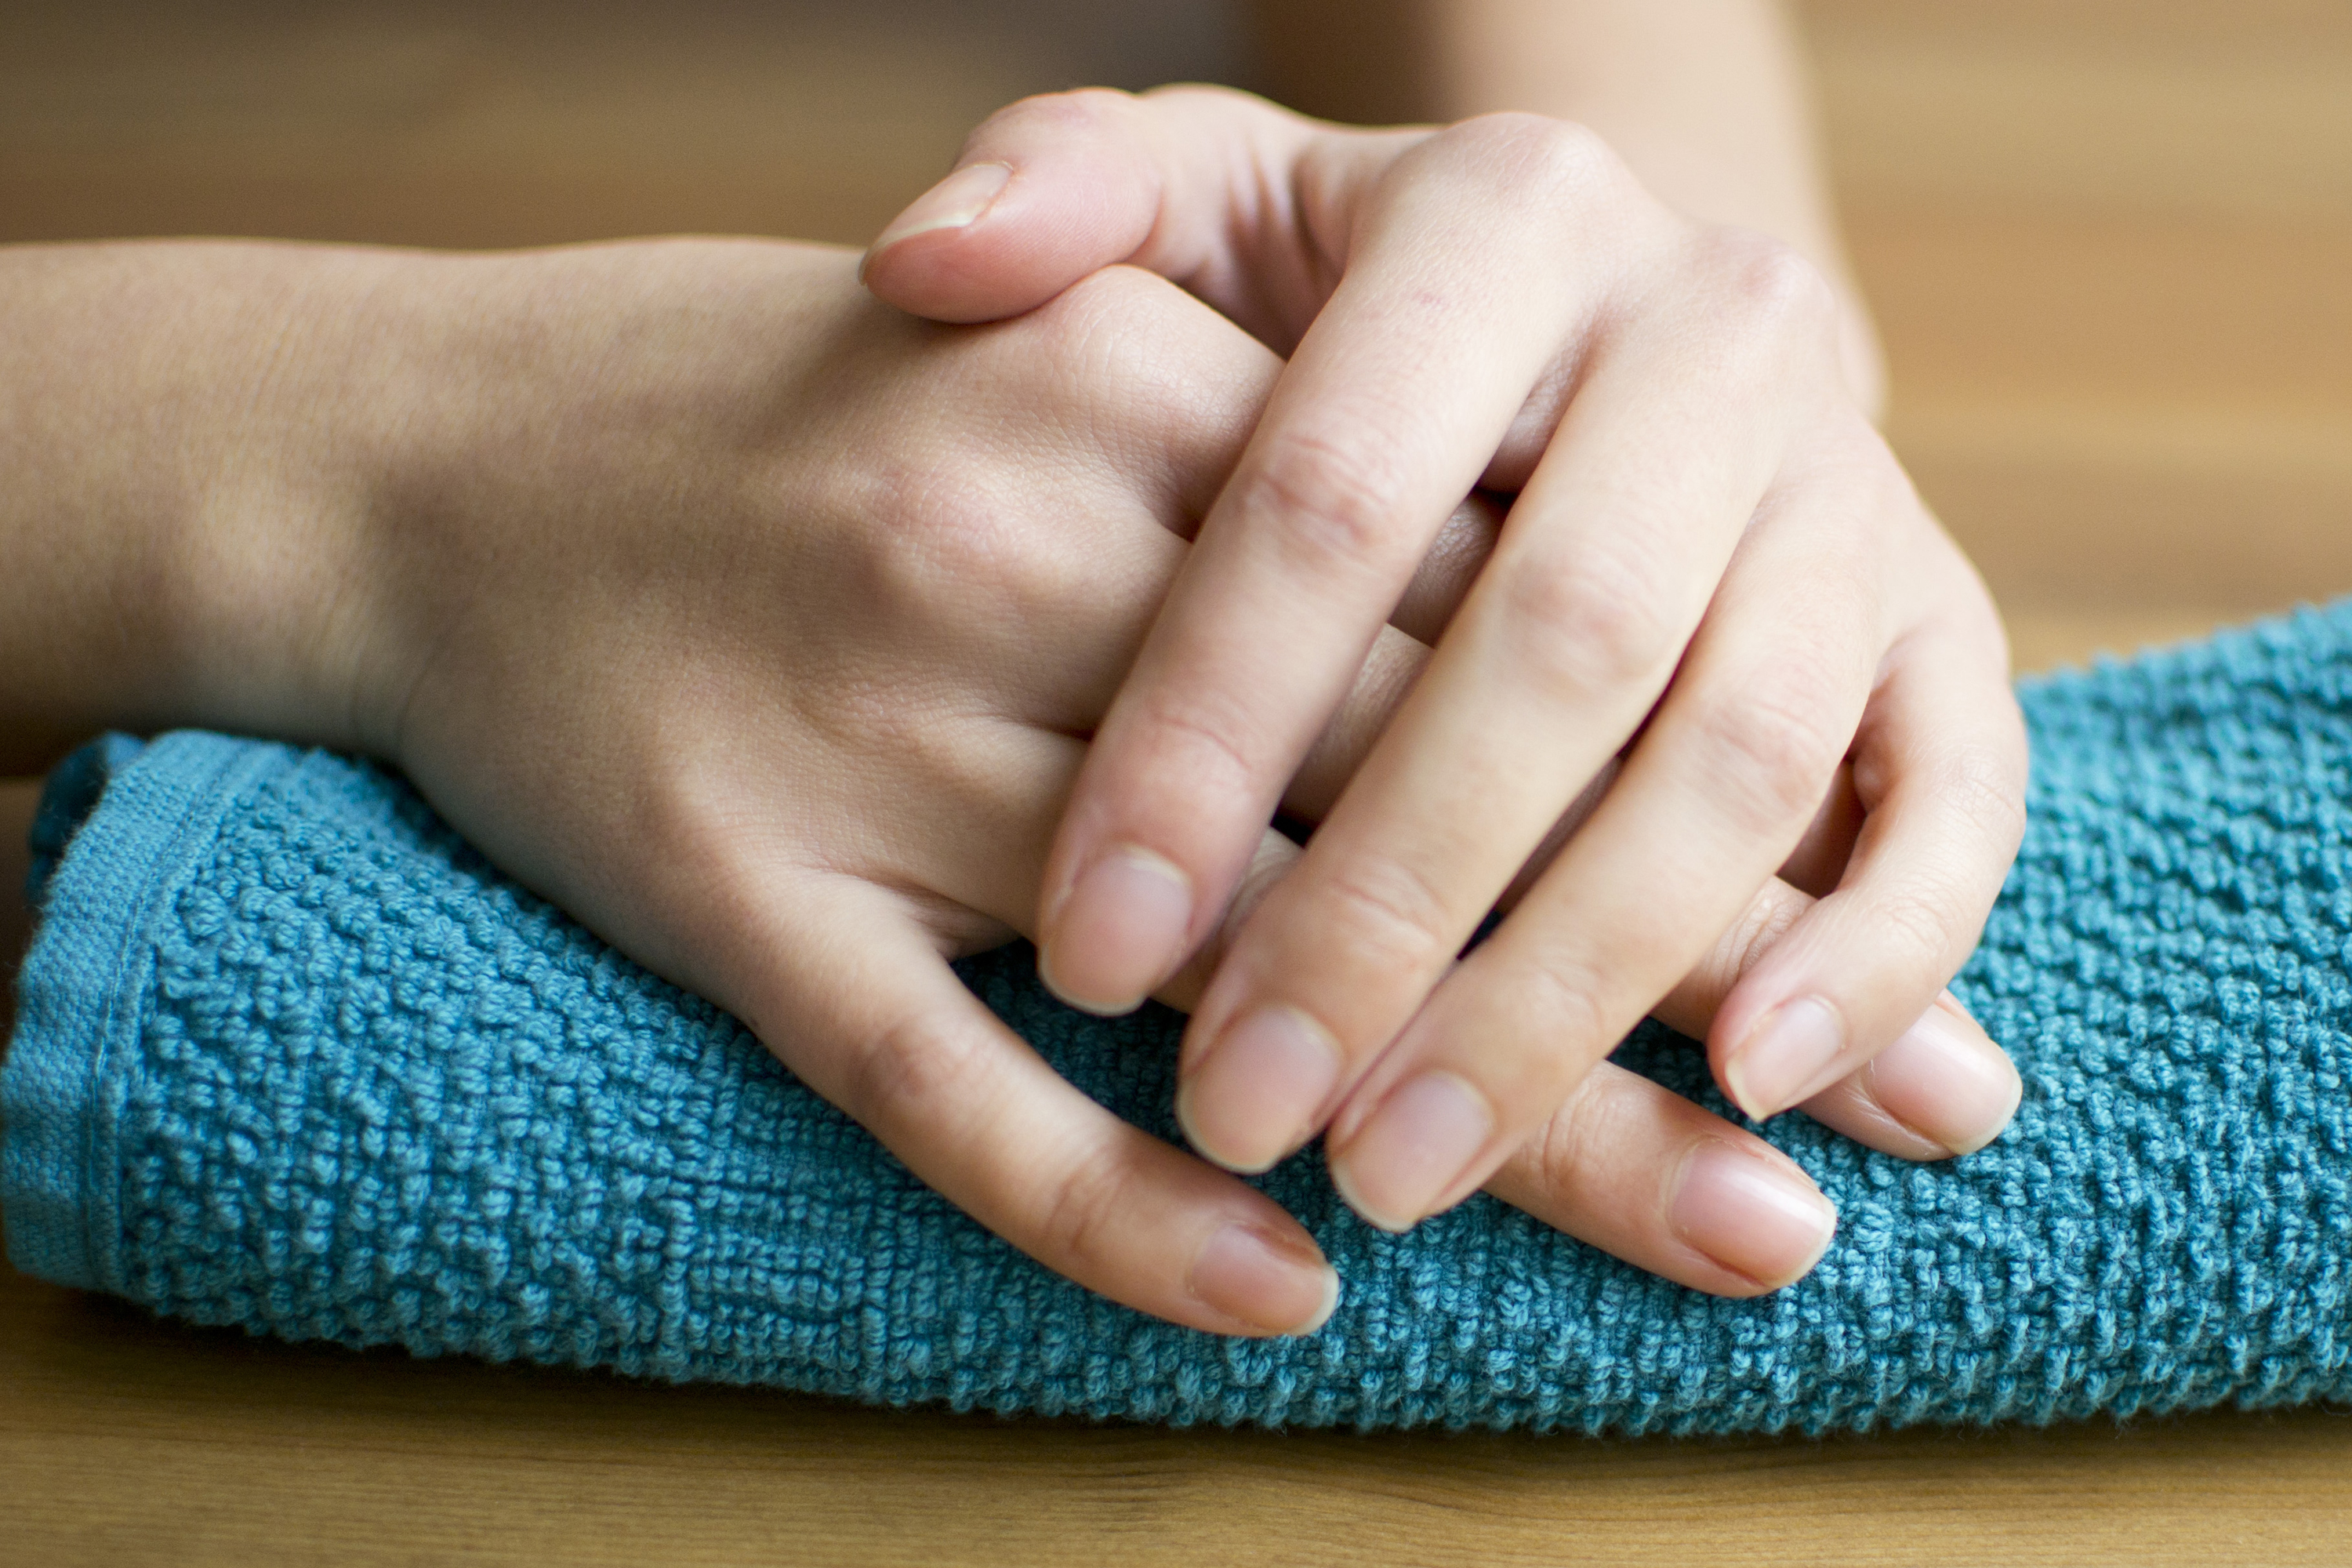 How to Trim Nail Cuticles | LIVESTRONG.COM